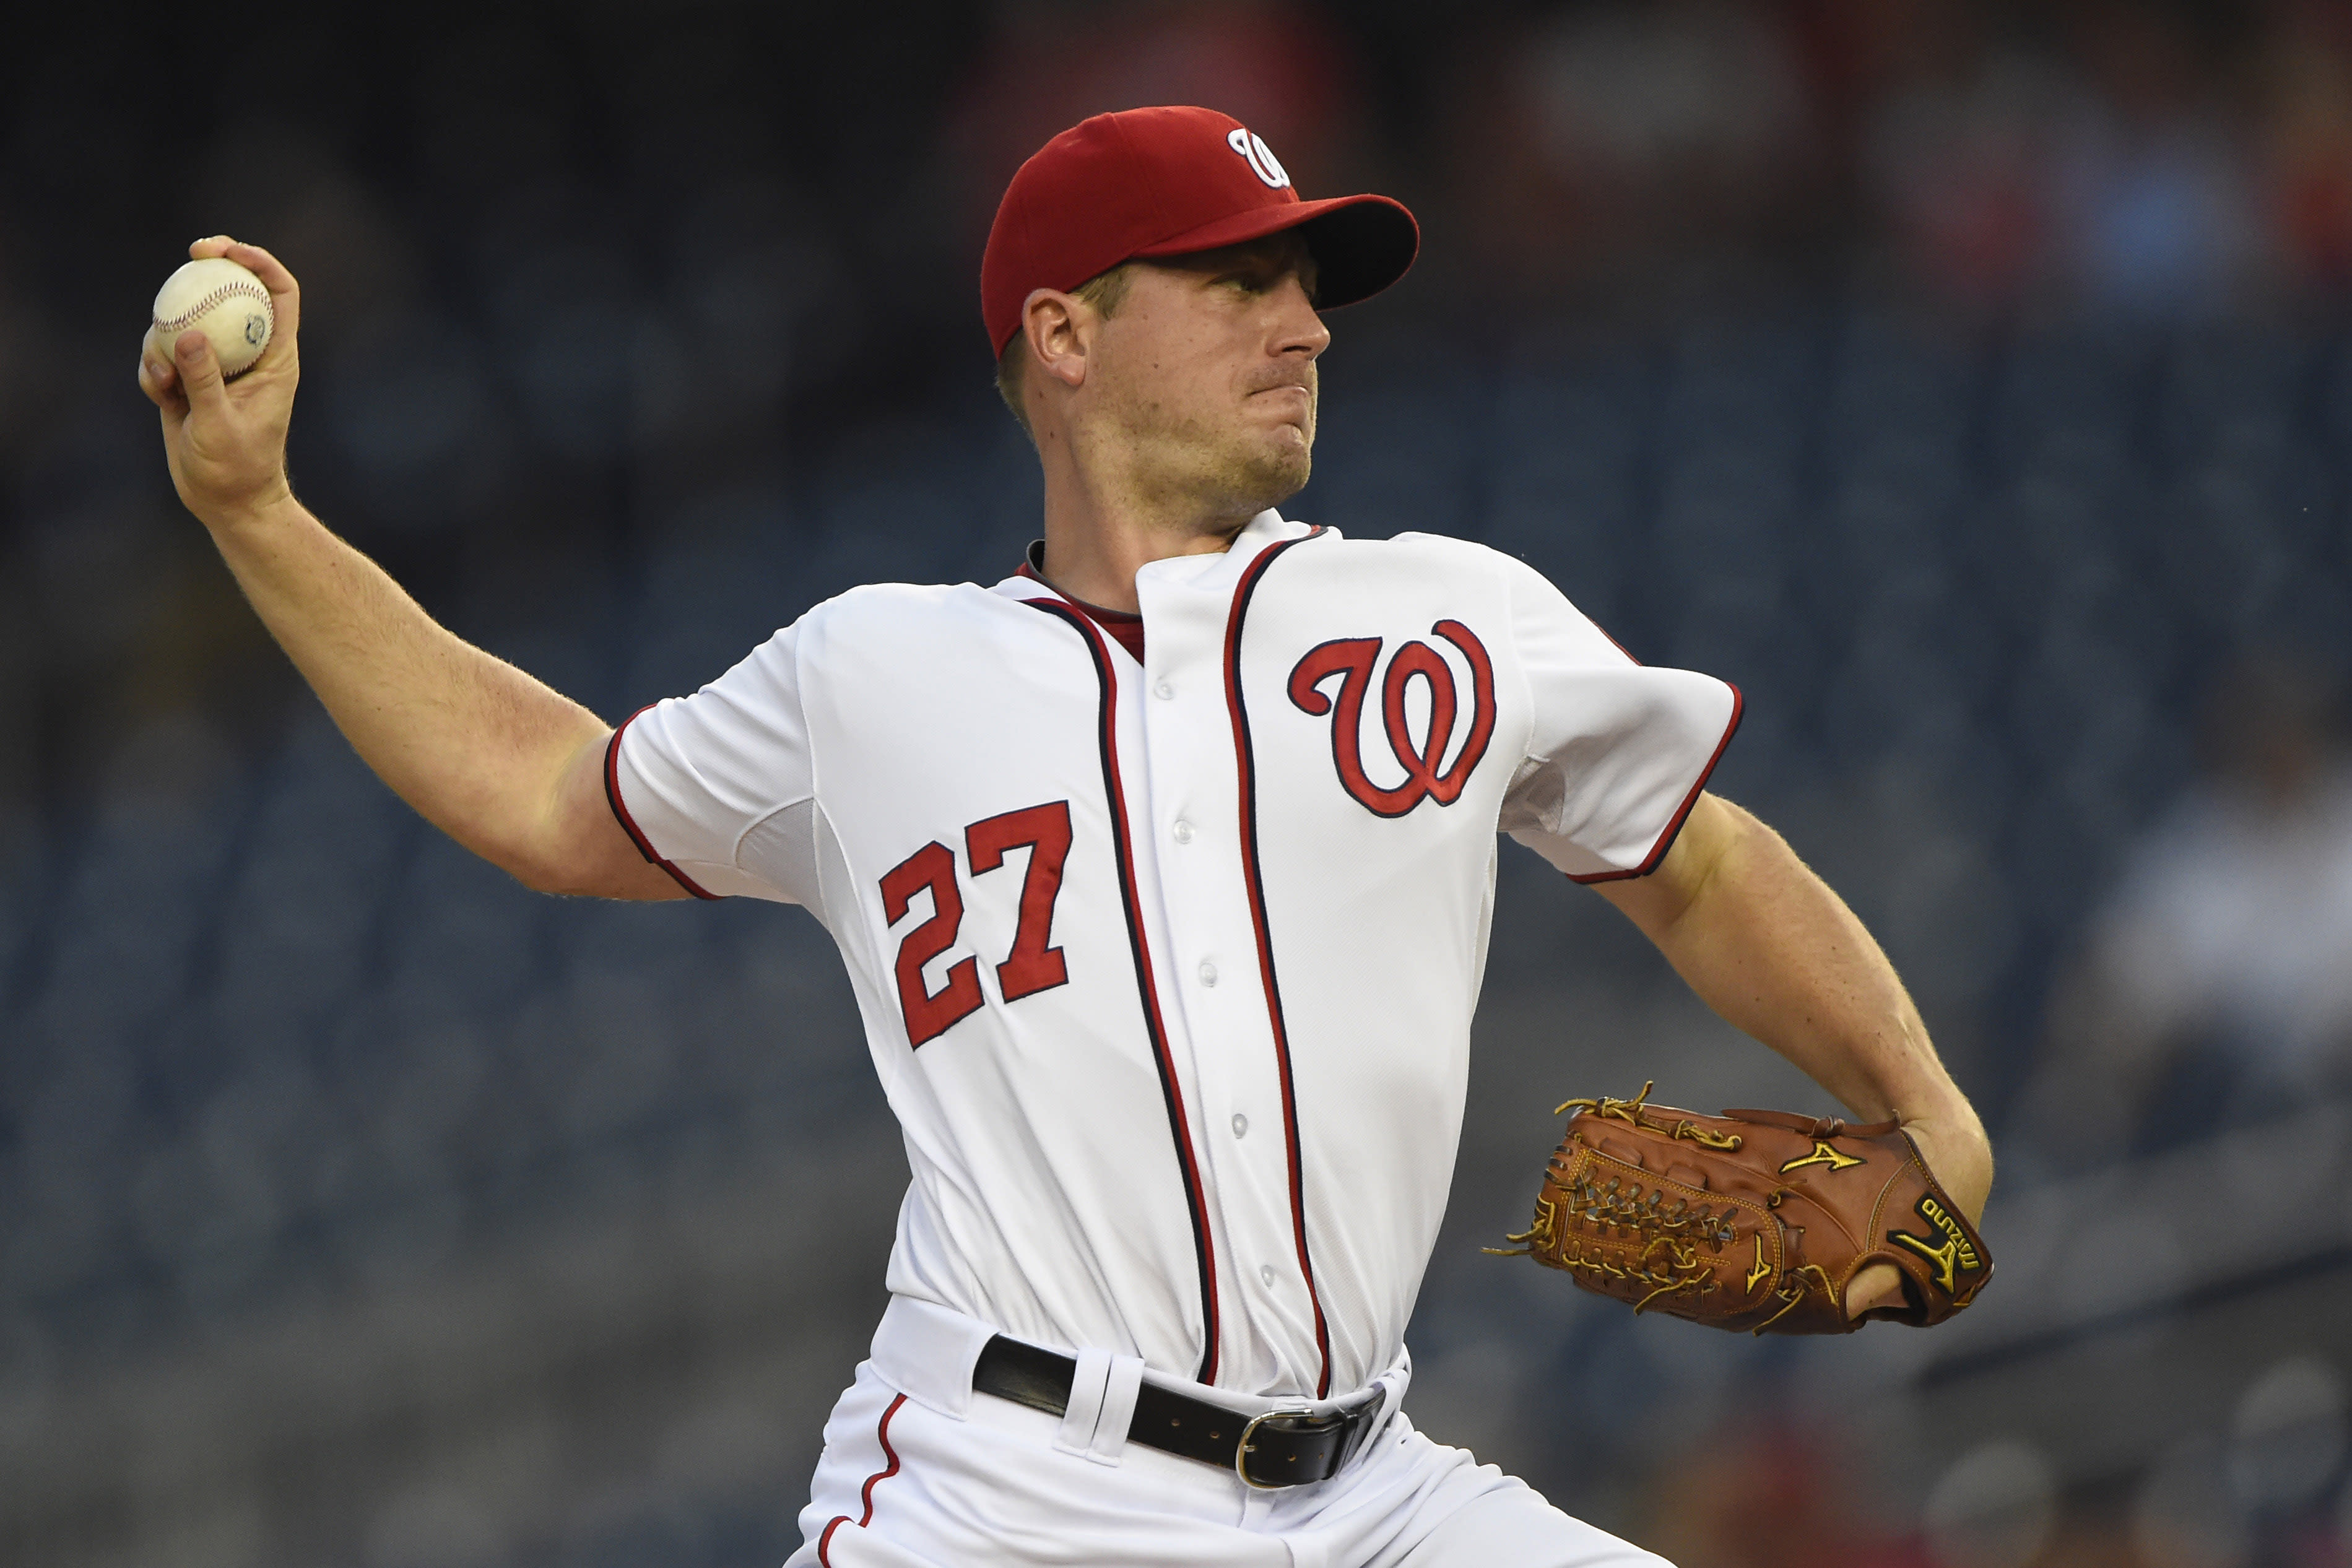 Blowout sets Zimmermann up nicely to face Mets